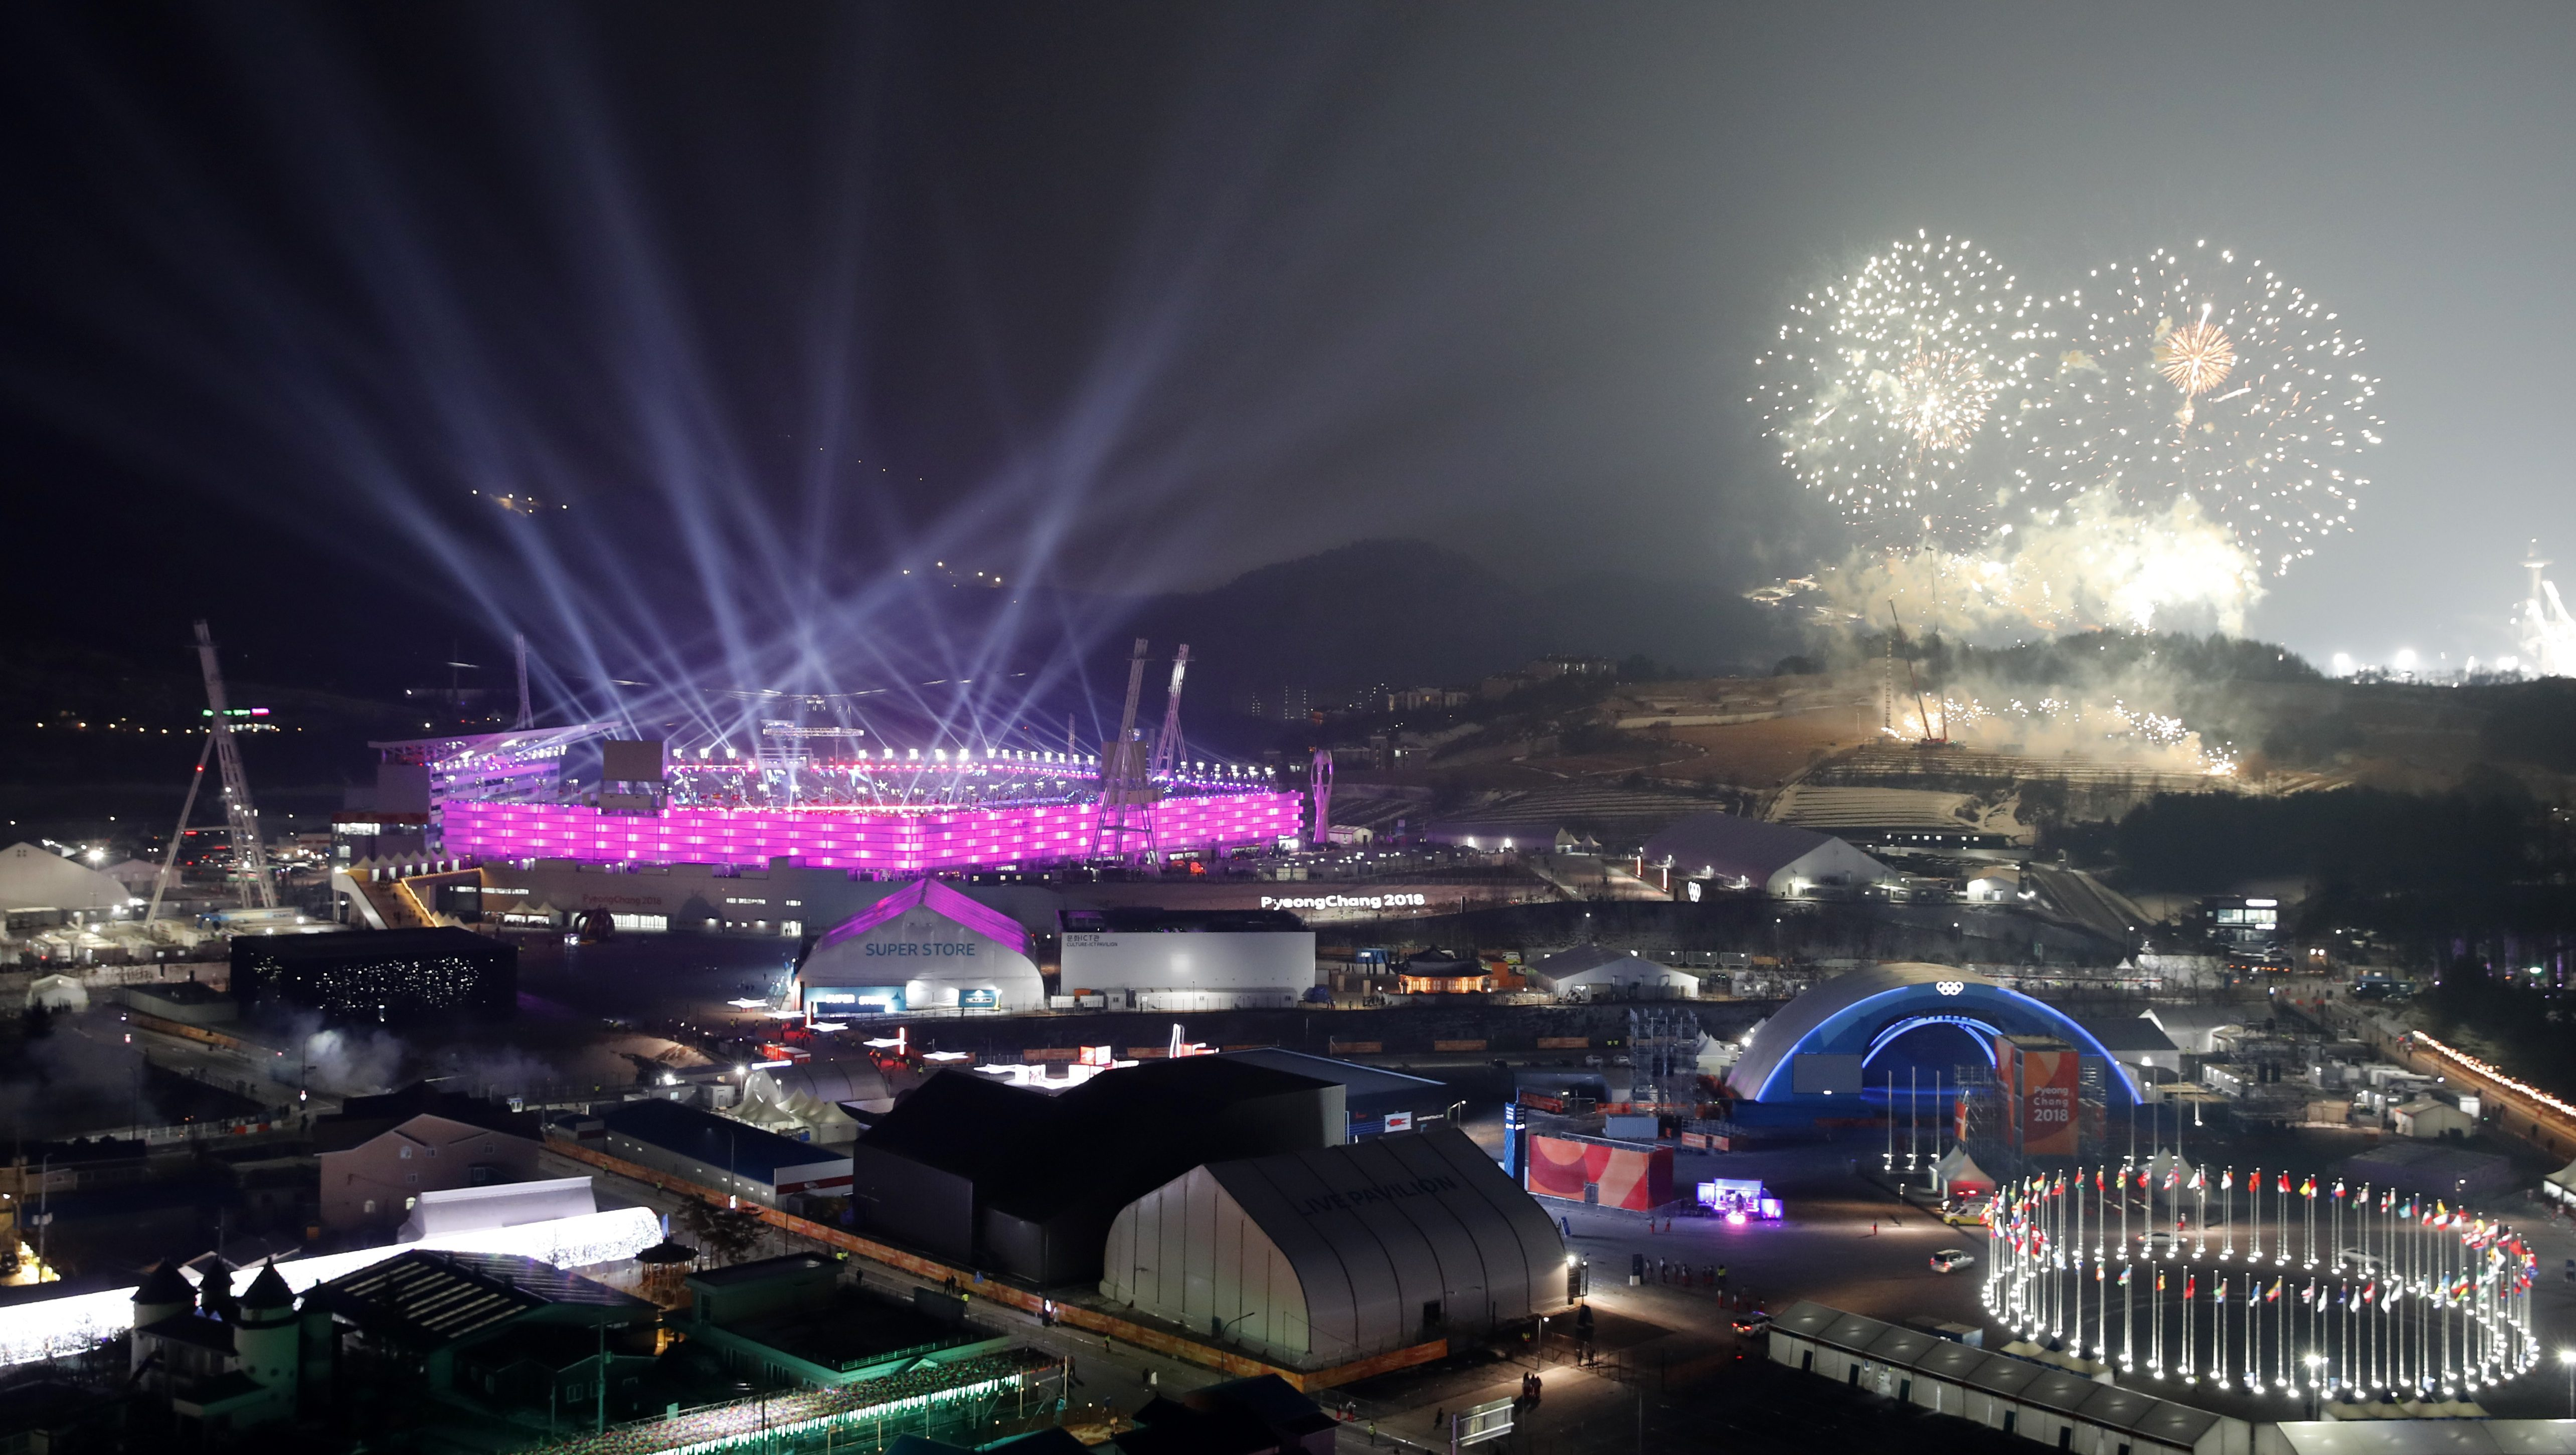 Pyeongchang 2018 Winter Olympics – Opening ceremony – Pyeongchang Olympic Stadium - Pyeongchang, South Korea – February 9, 2018 - A general view shows fireworks during the opening ceremony.  - DEVEE290YITCW